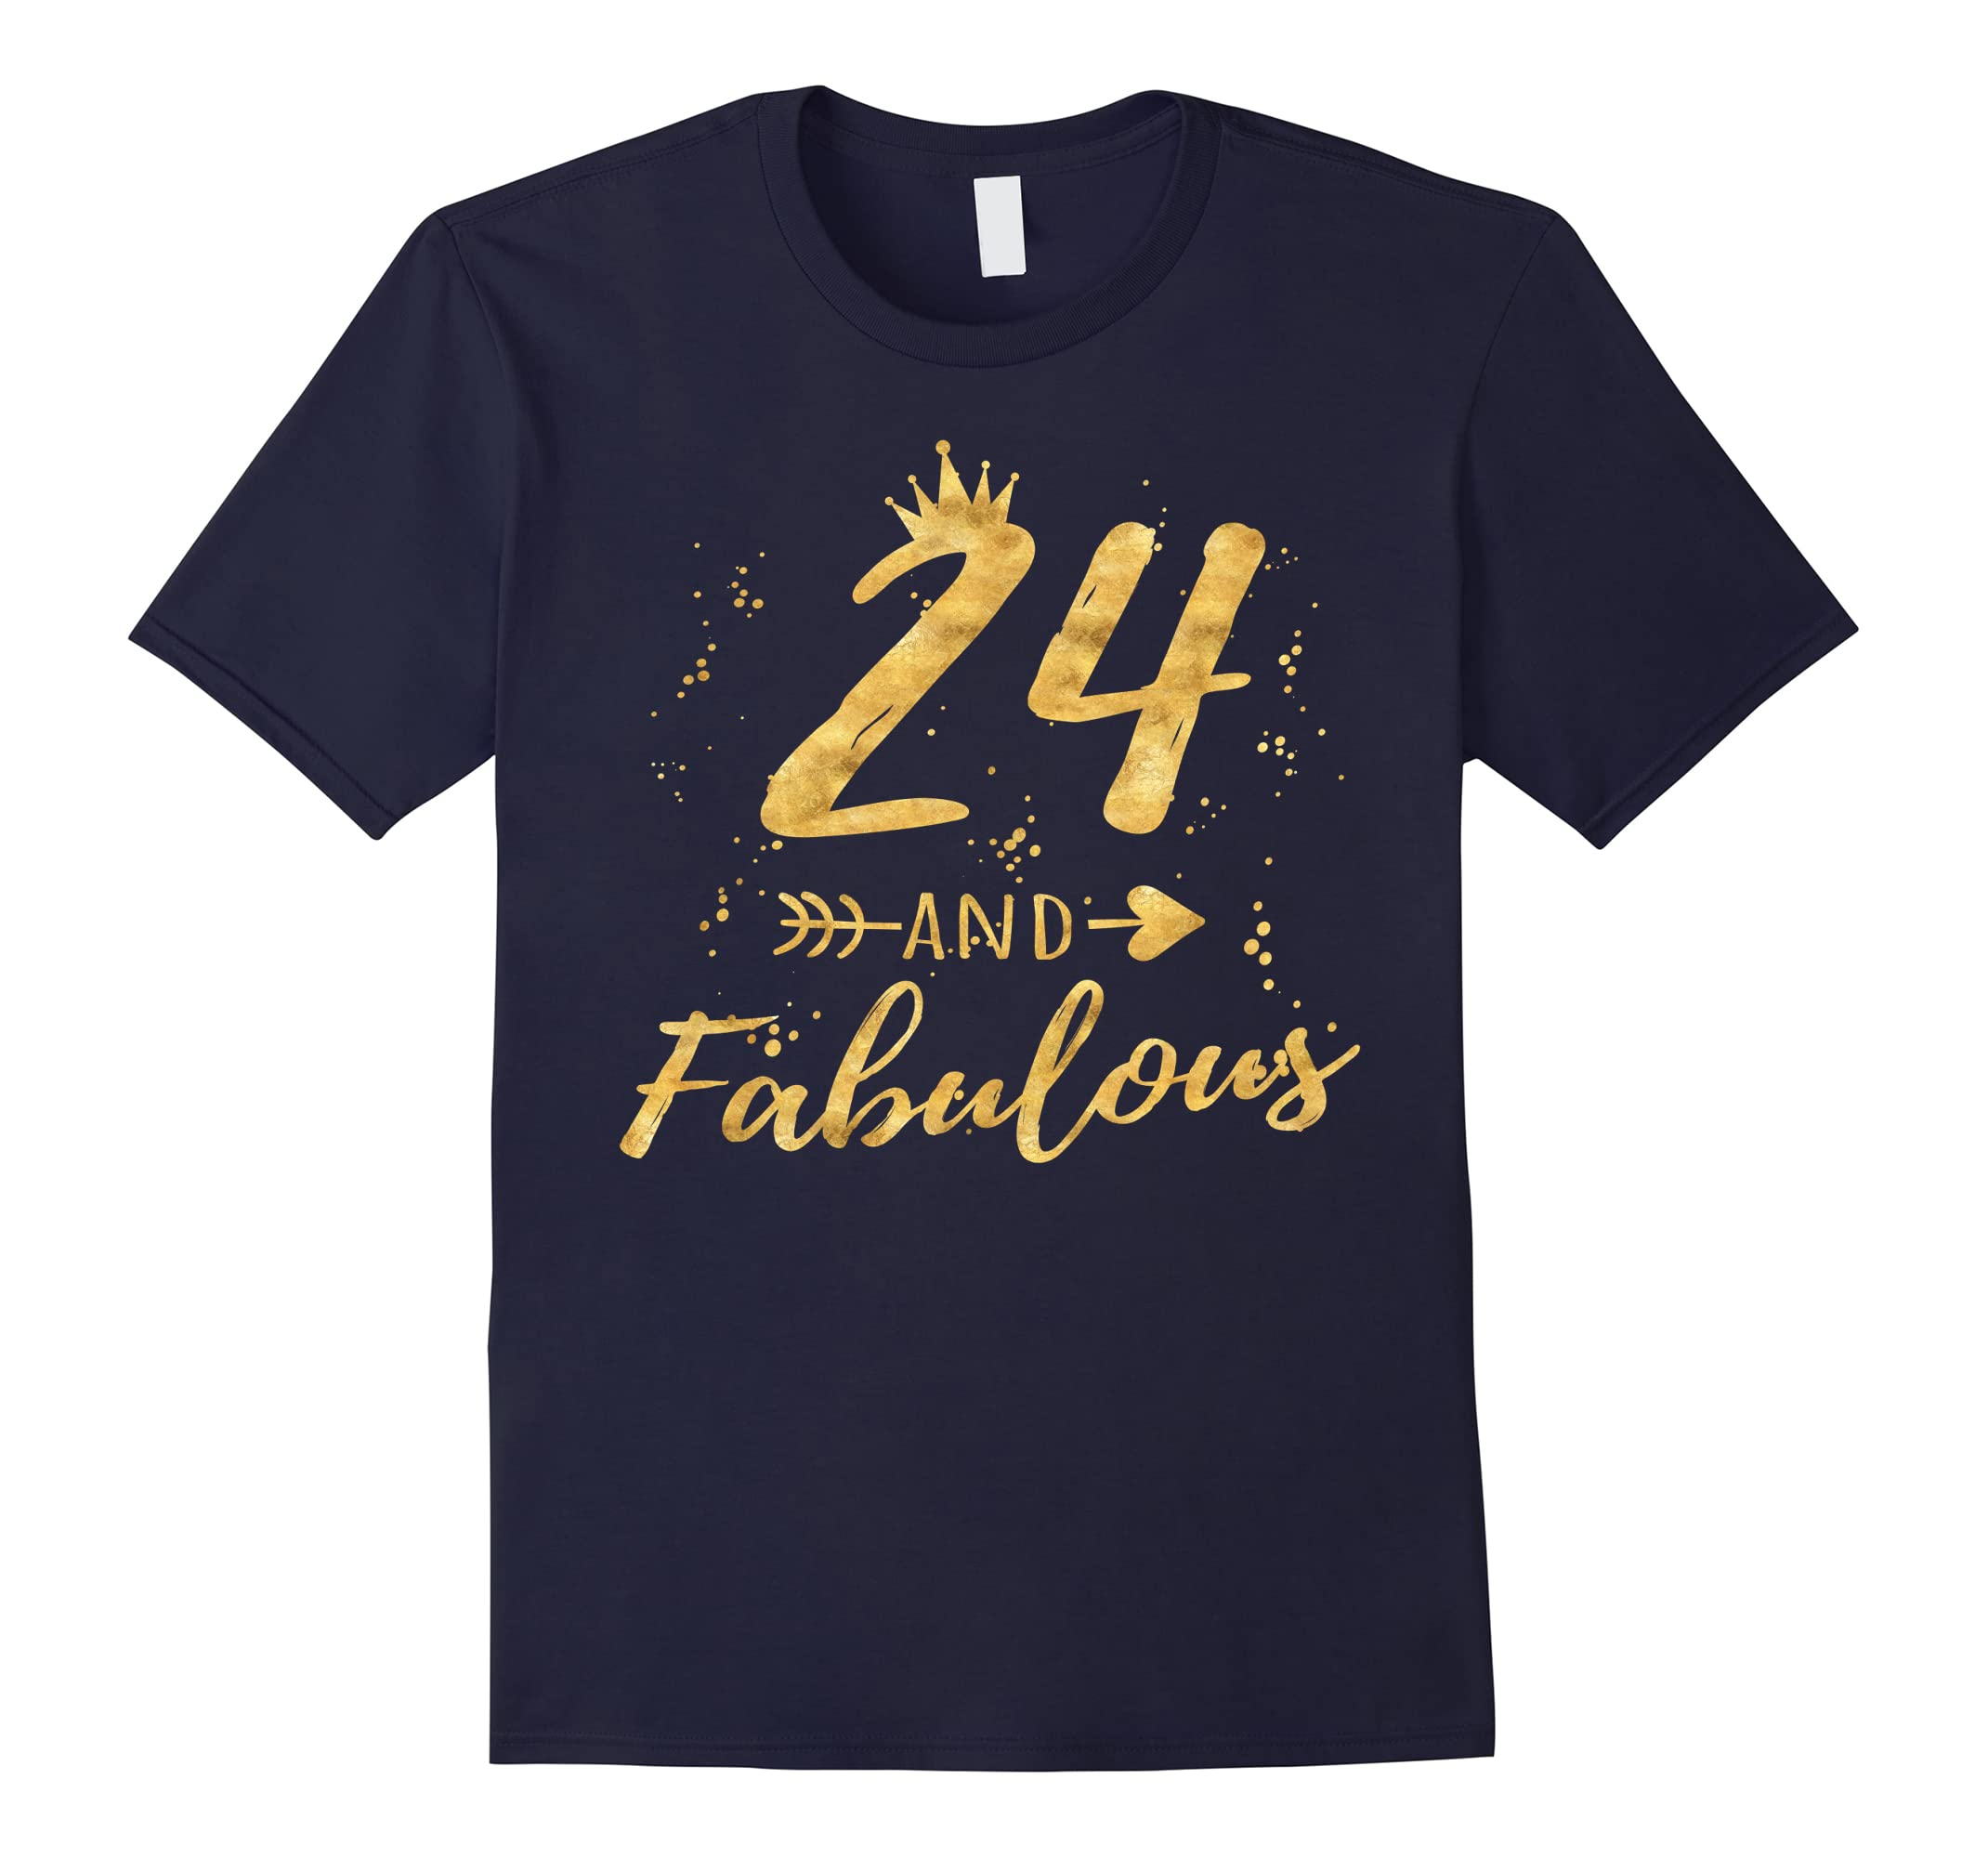 decf1065e7 24th Birthday Gifts for Women, 24 and Fabulous Party Shirt-RT ...